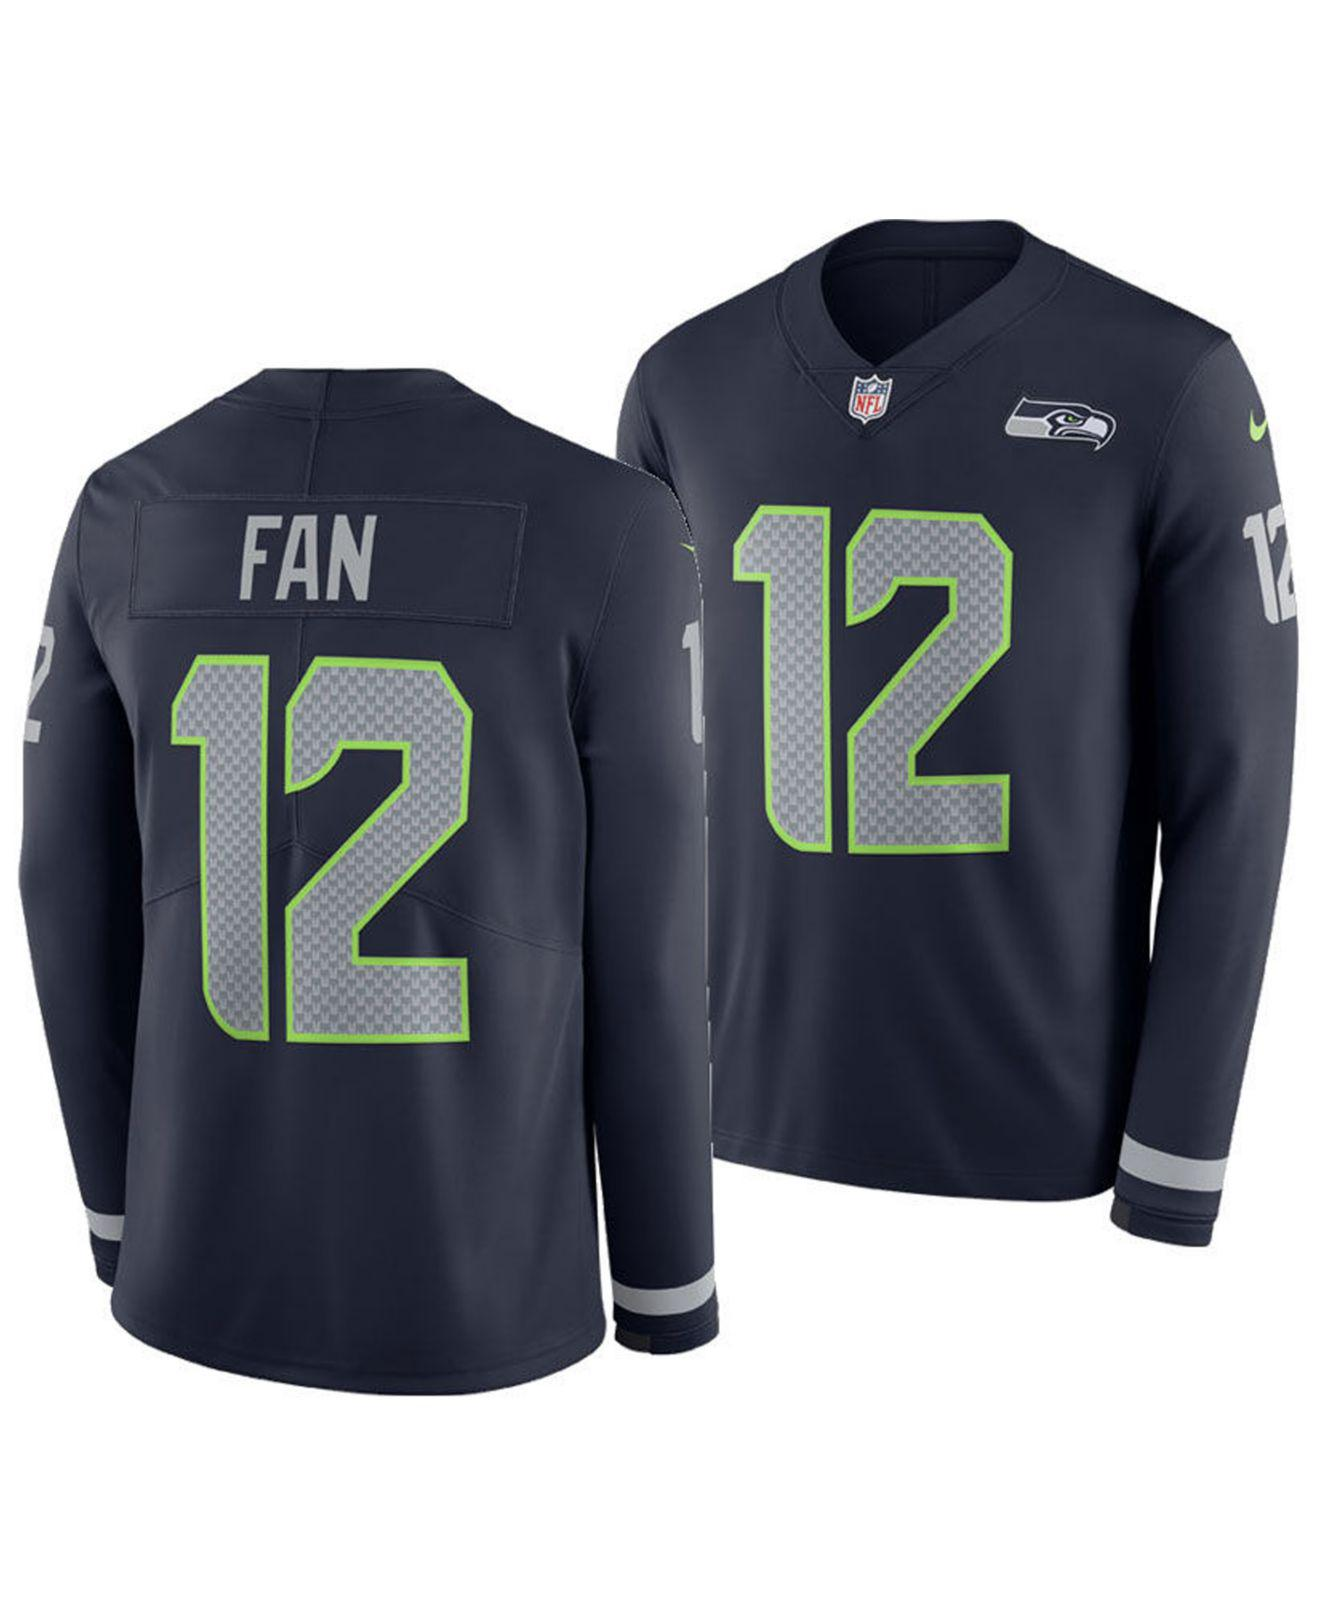 Lyst - Nike Fan  12 Seattle Seahawks Therma Jersey in Blue for Men 473448b6f